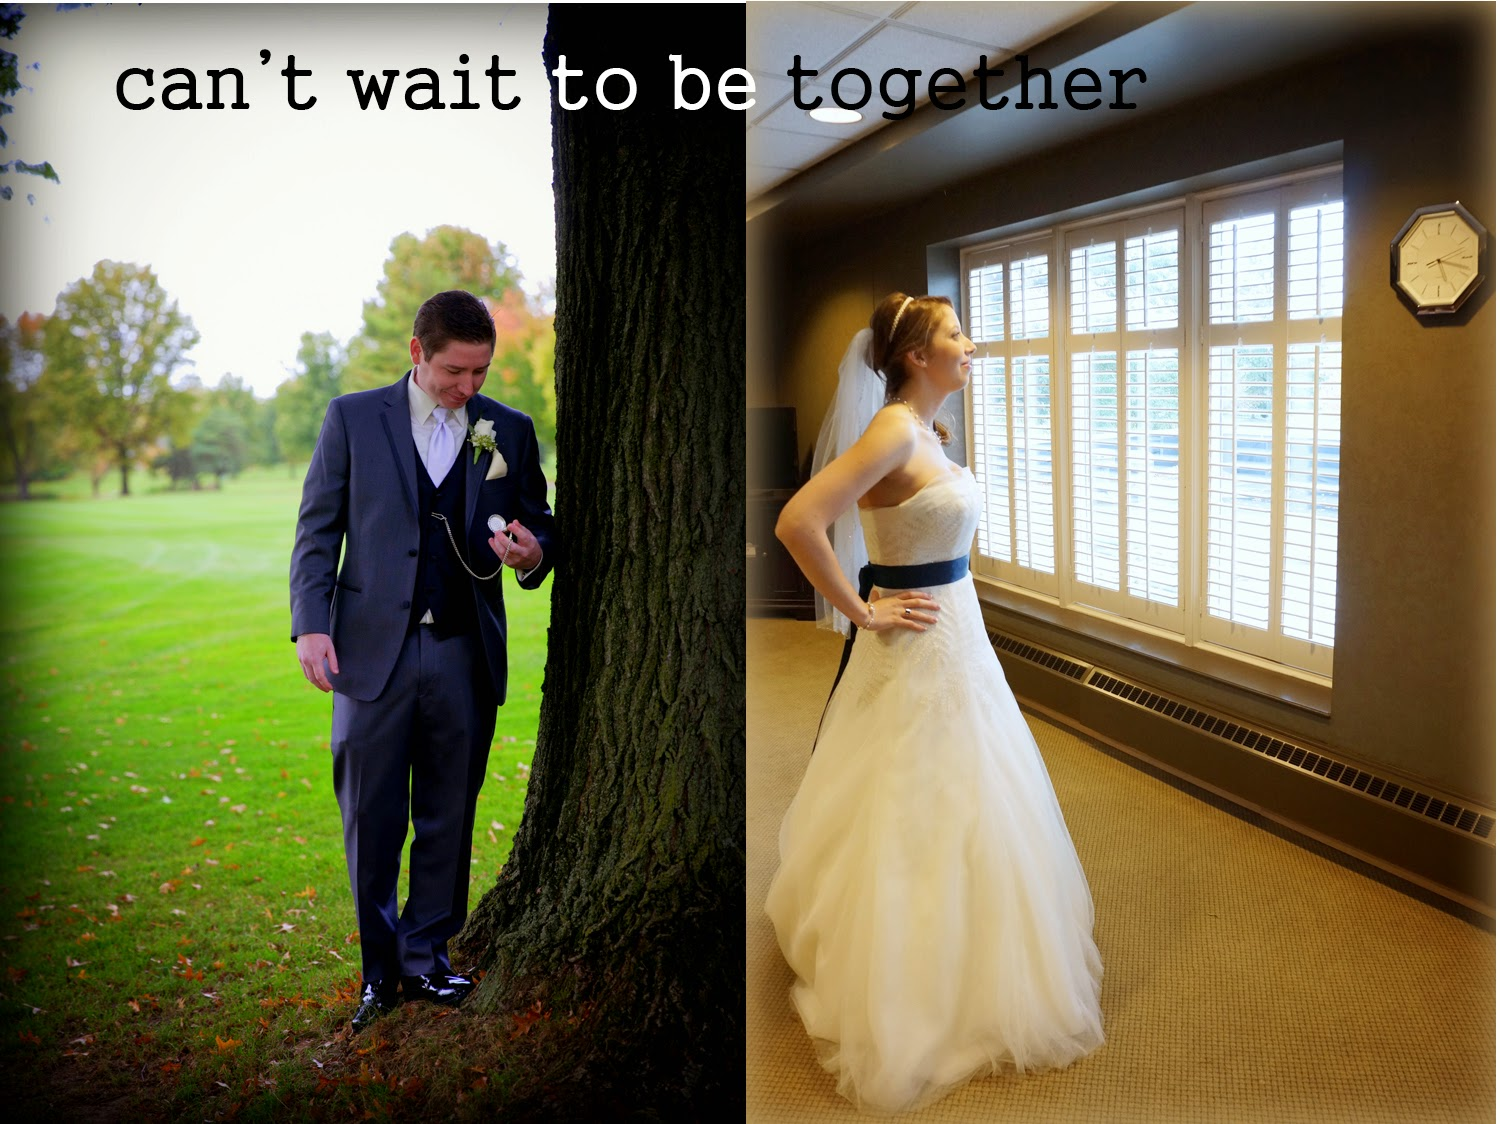 can't wait to be together